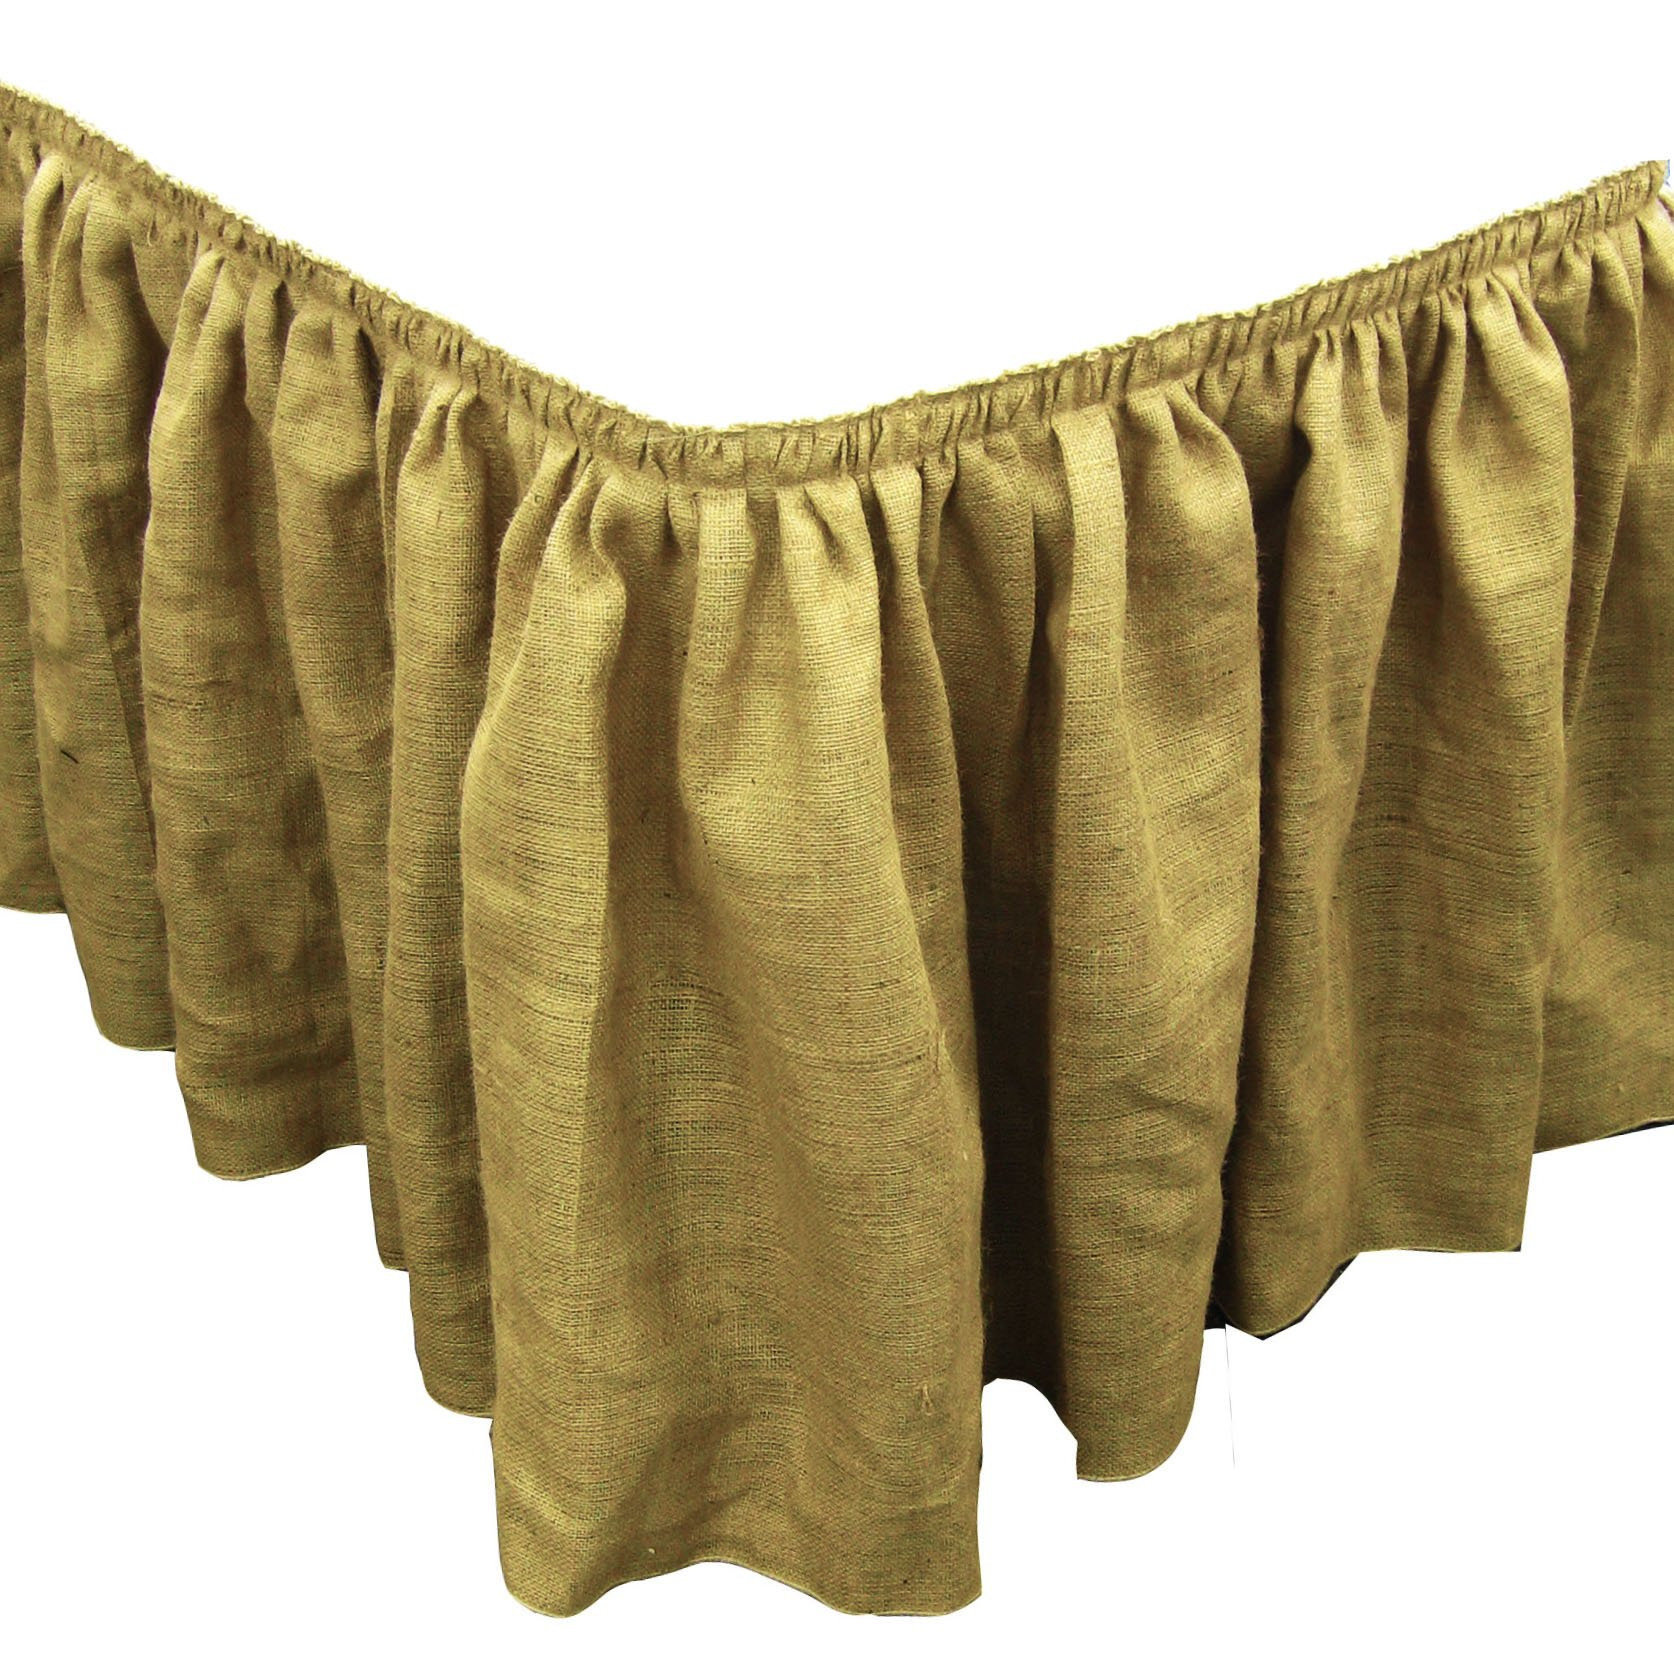 LA Linen Natural Burlap Pleated Table Skirt with 15 Large Clips, 21-Feet by 29-Inch by LA Linen